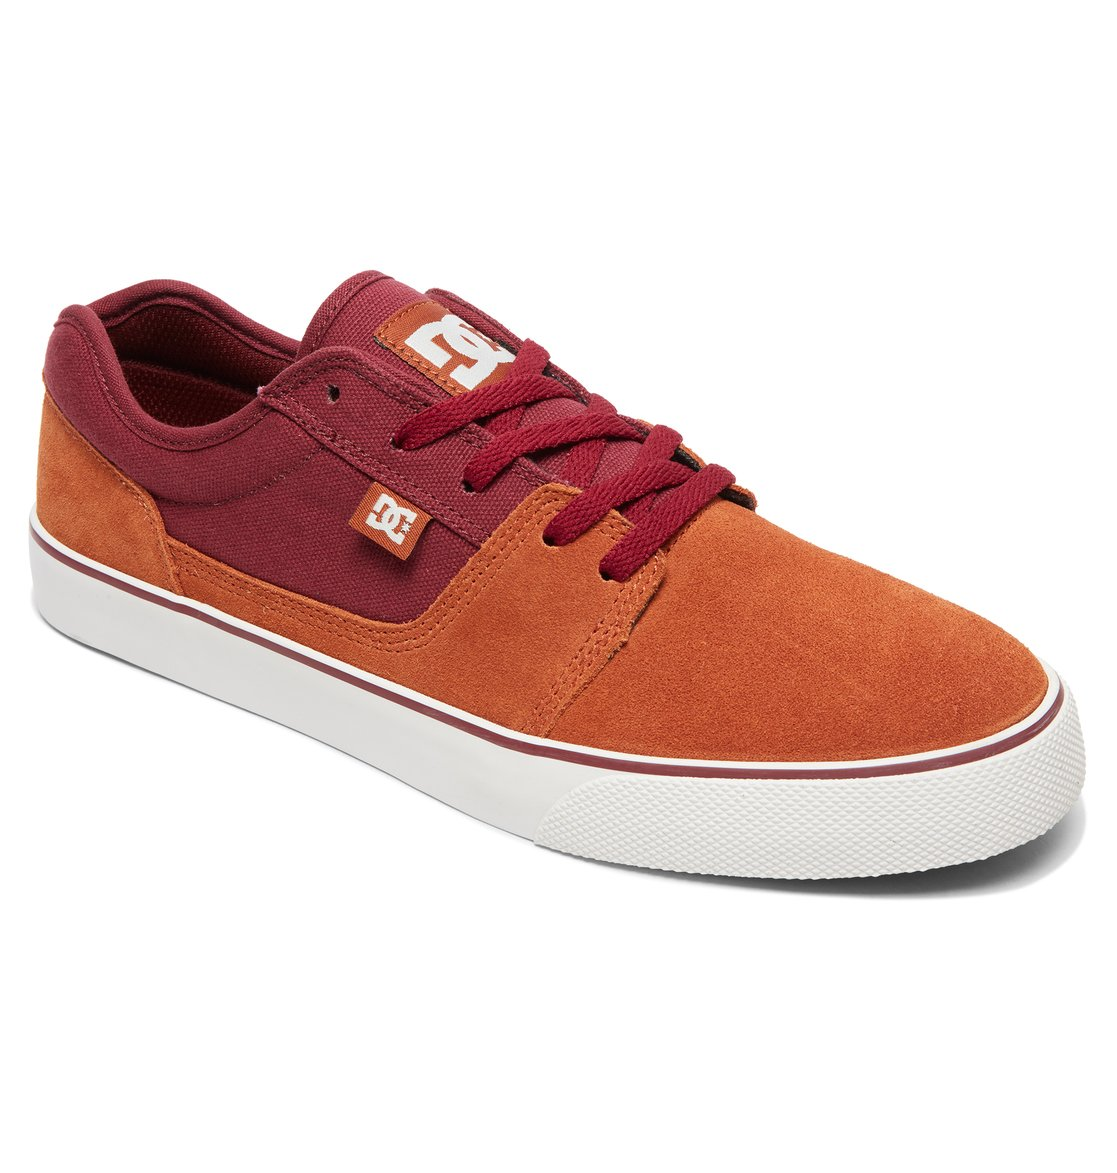 DC-Shoes-Tonik-Baskets-pour-Homme-302905 miniature 34